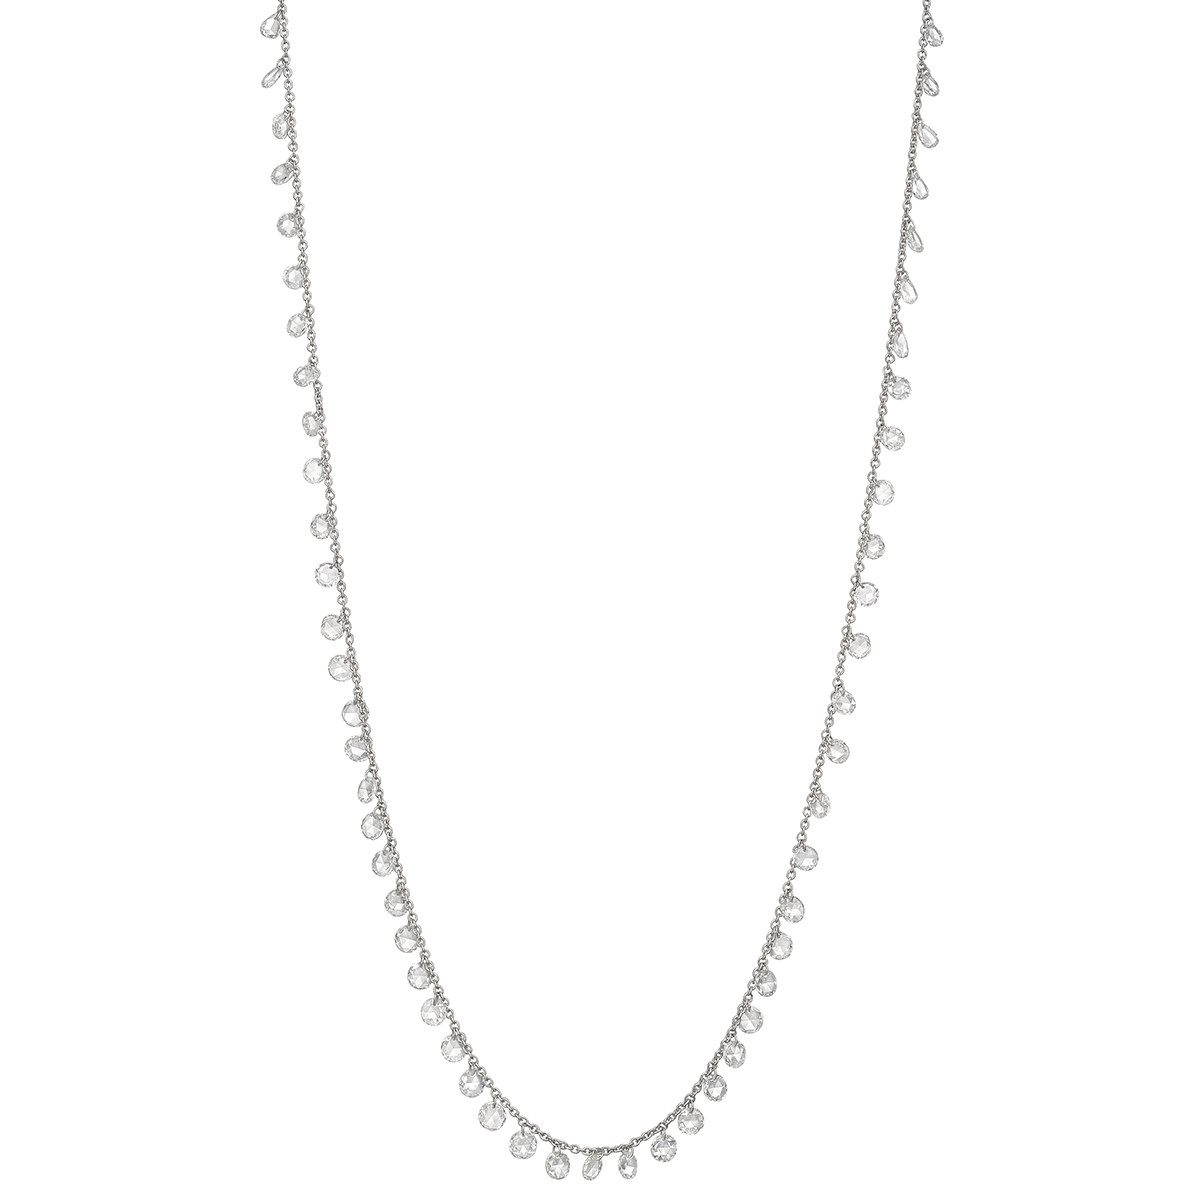 Rose-Cut Diamond Fringe Chain Necklace (5.13 ct tw)